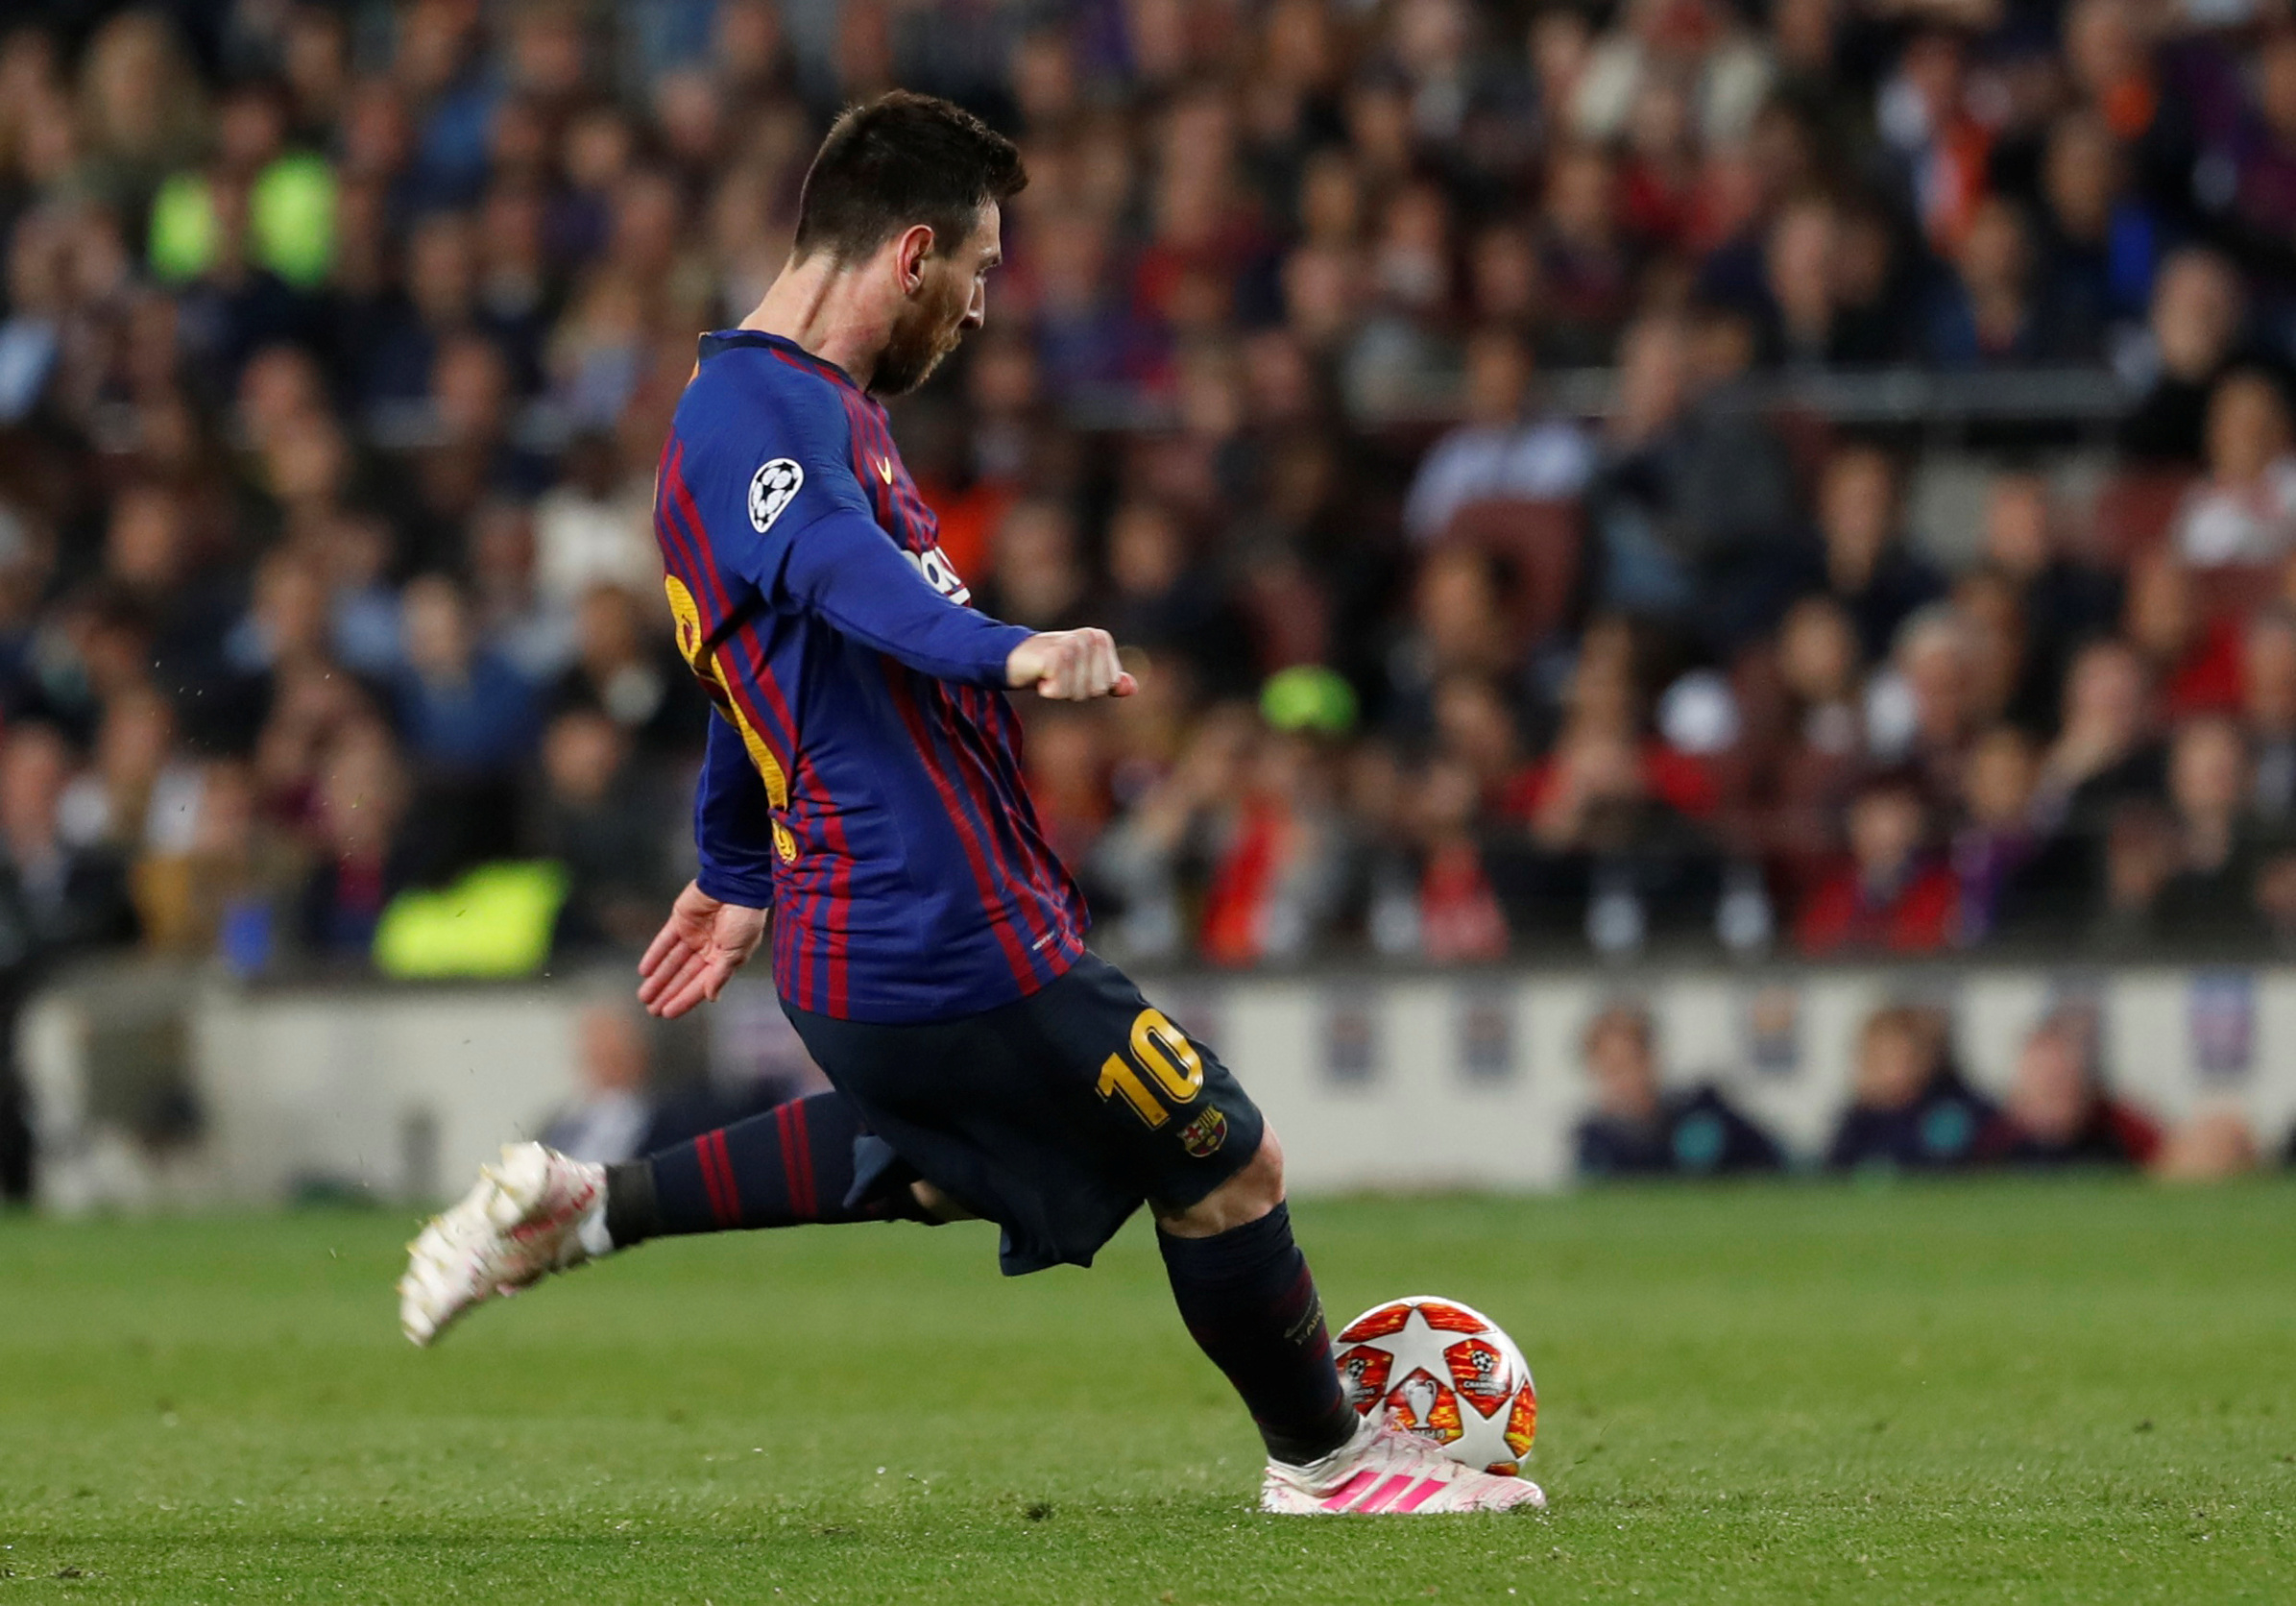 Soccer Football - Champions League Semi Final First Leg - FC Barcelona v Liverpool - Camp Nou, Barcelona, Spain - May 1, 2019  Barcelona's Lionel Messi scores their third goal from a free kick   REUTERS/Susana Vera